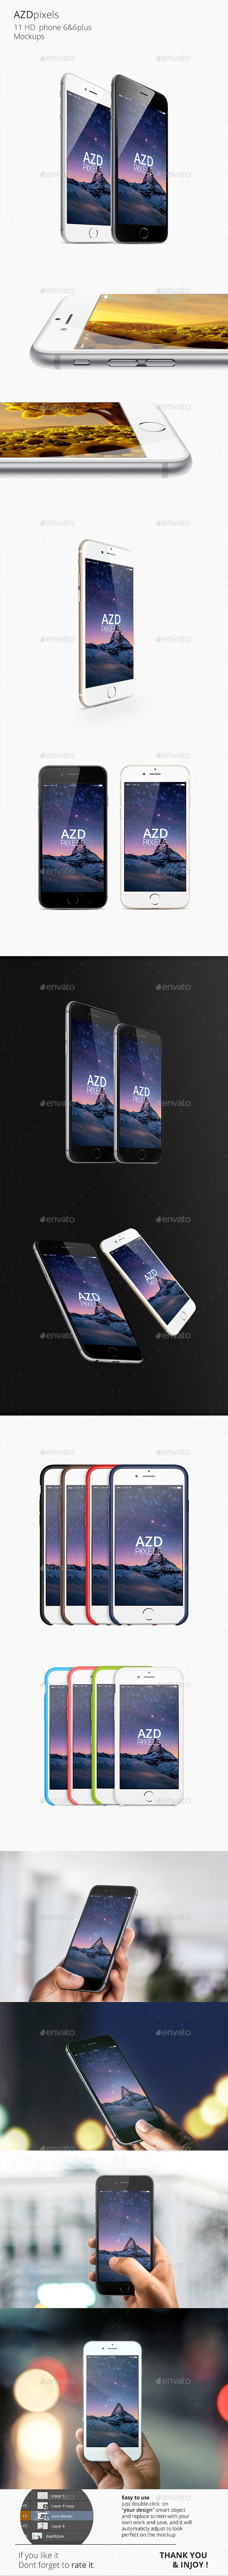 GraphicRiver 11 Phone 6 & 6plus Mockups 8894755